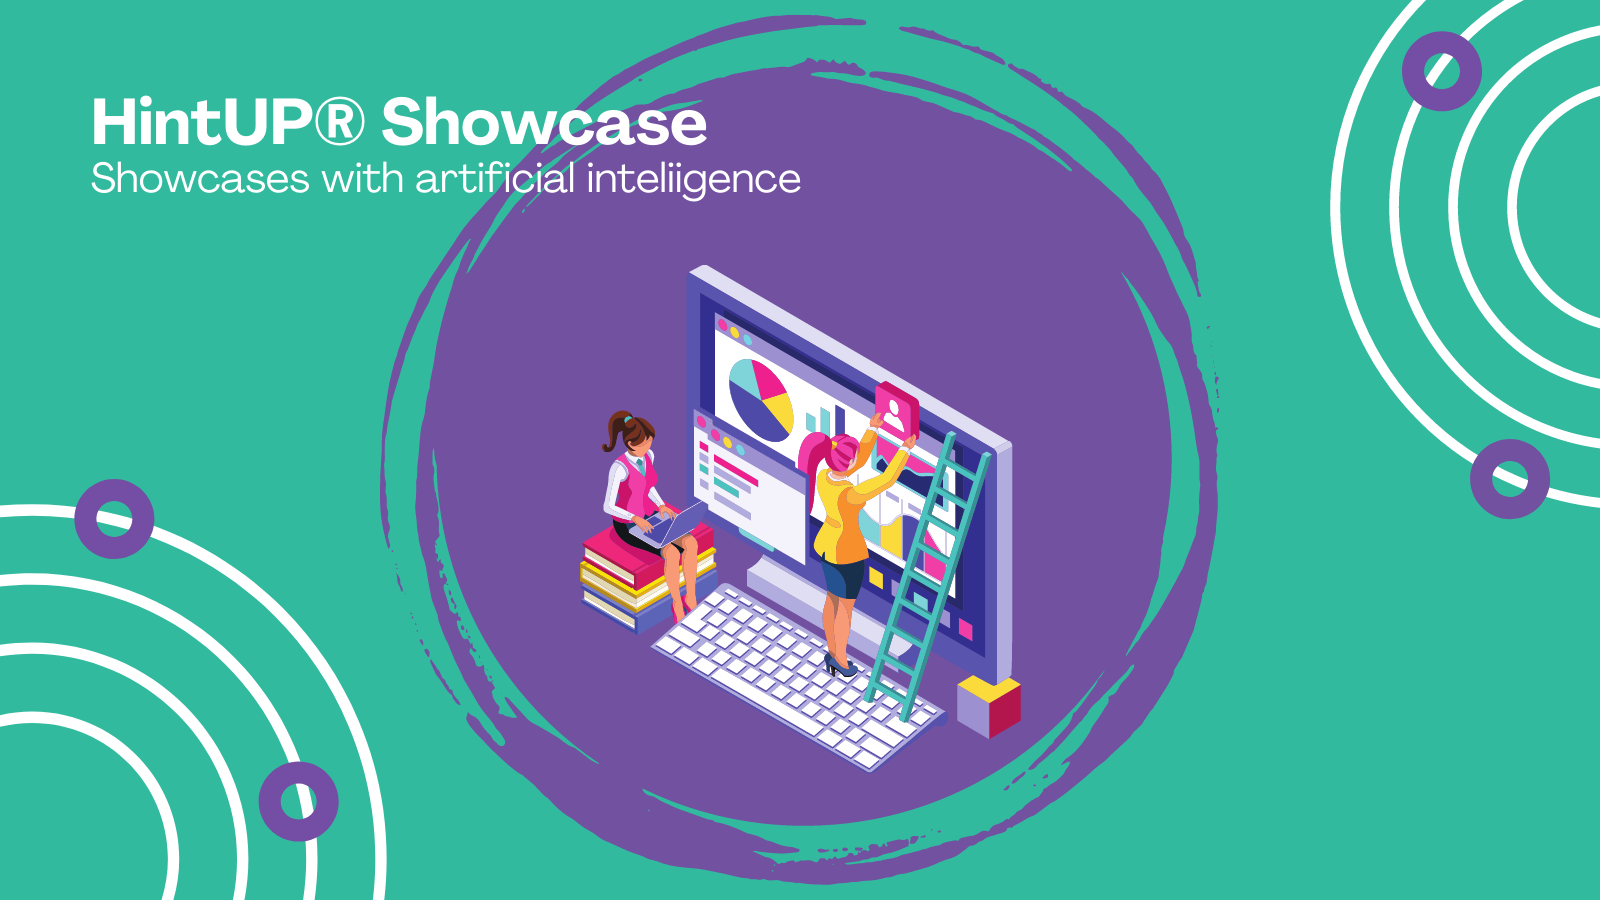 HintUP® Showcase - Showcases with artificial inteliigence